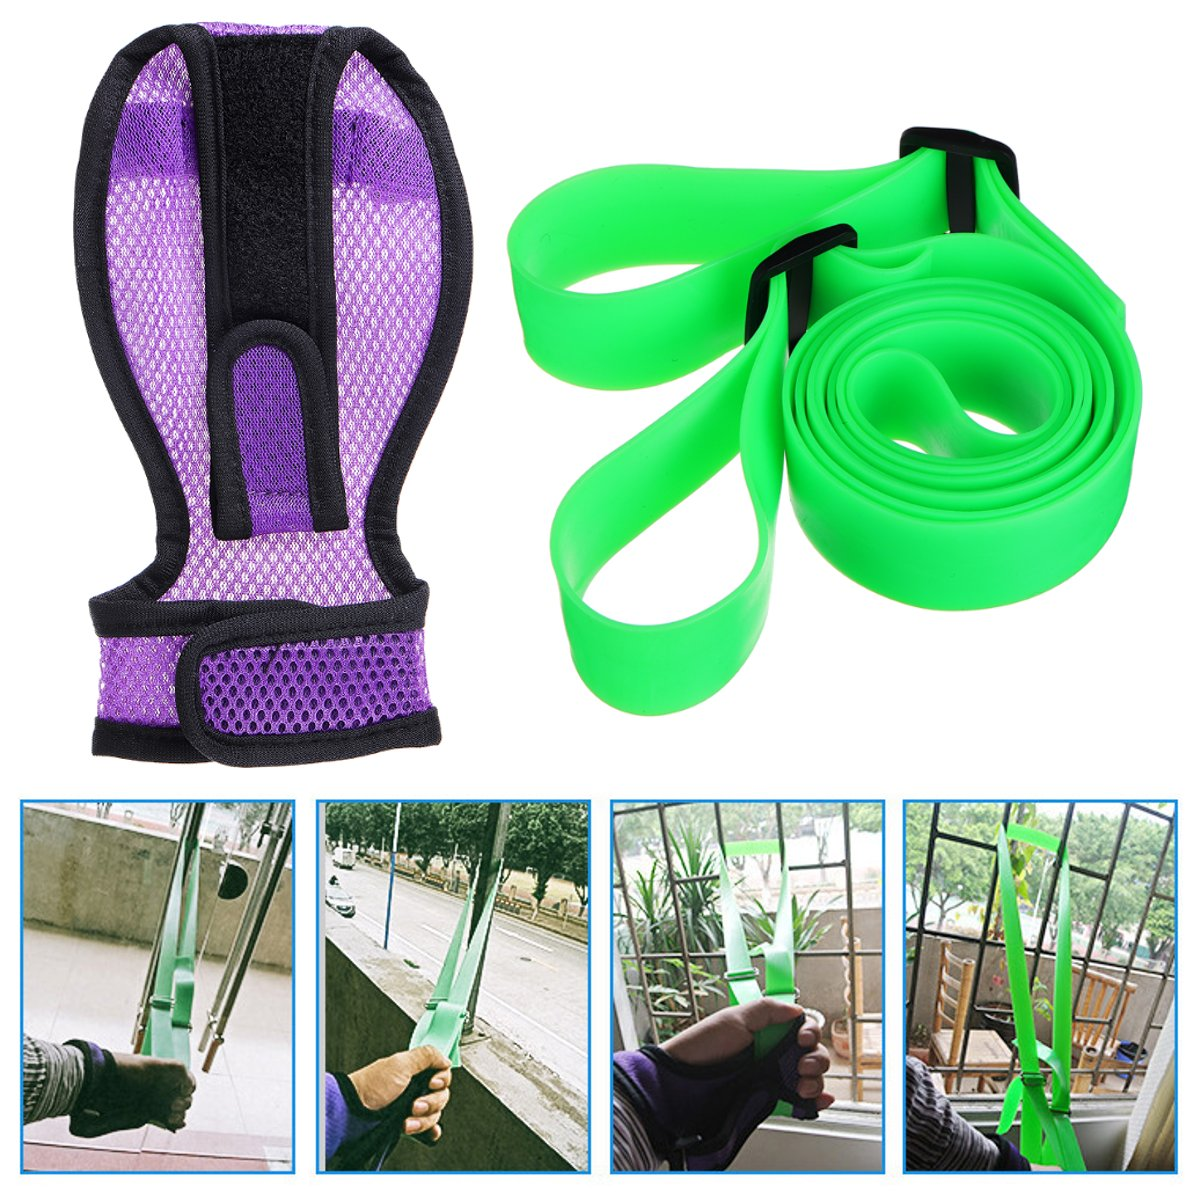 Upper Limb Arm Training Belt Rehabilitation Finger Glove Stroke Hemiplegia Paralyzed Elastic Stretch Belt Exercise Training Care